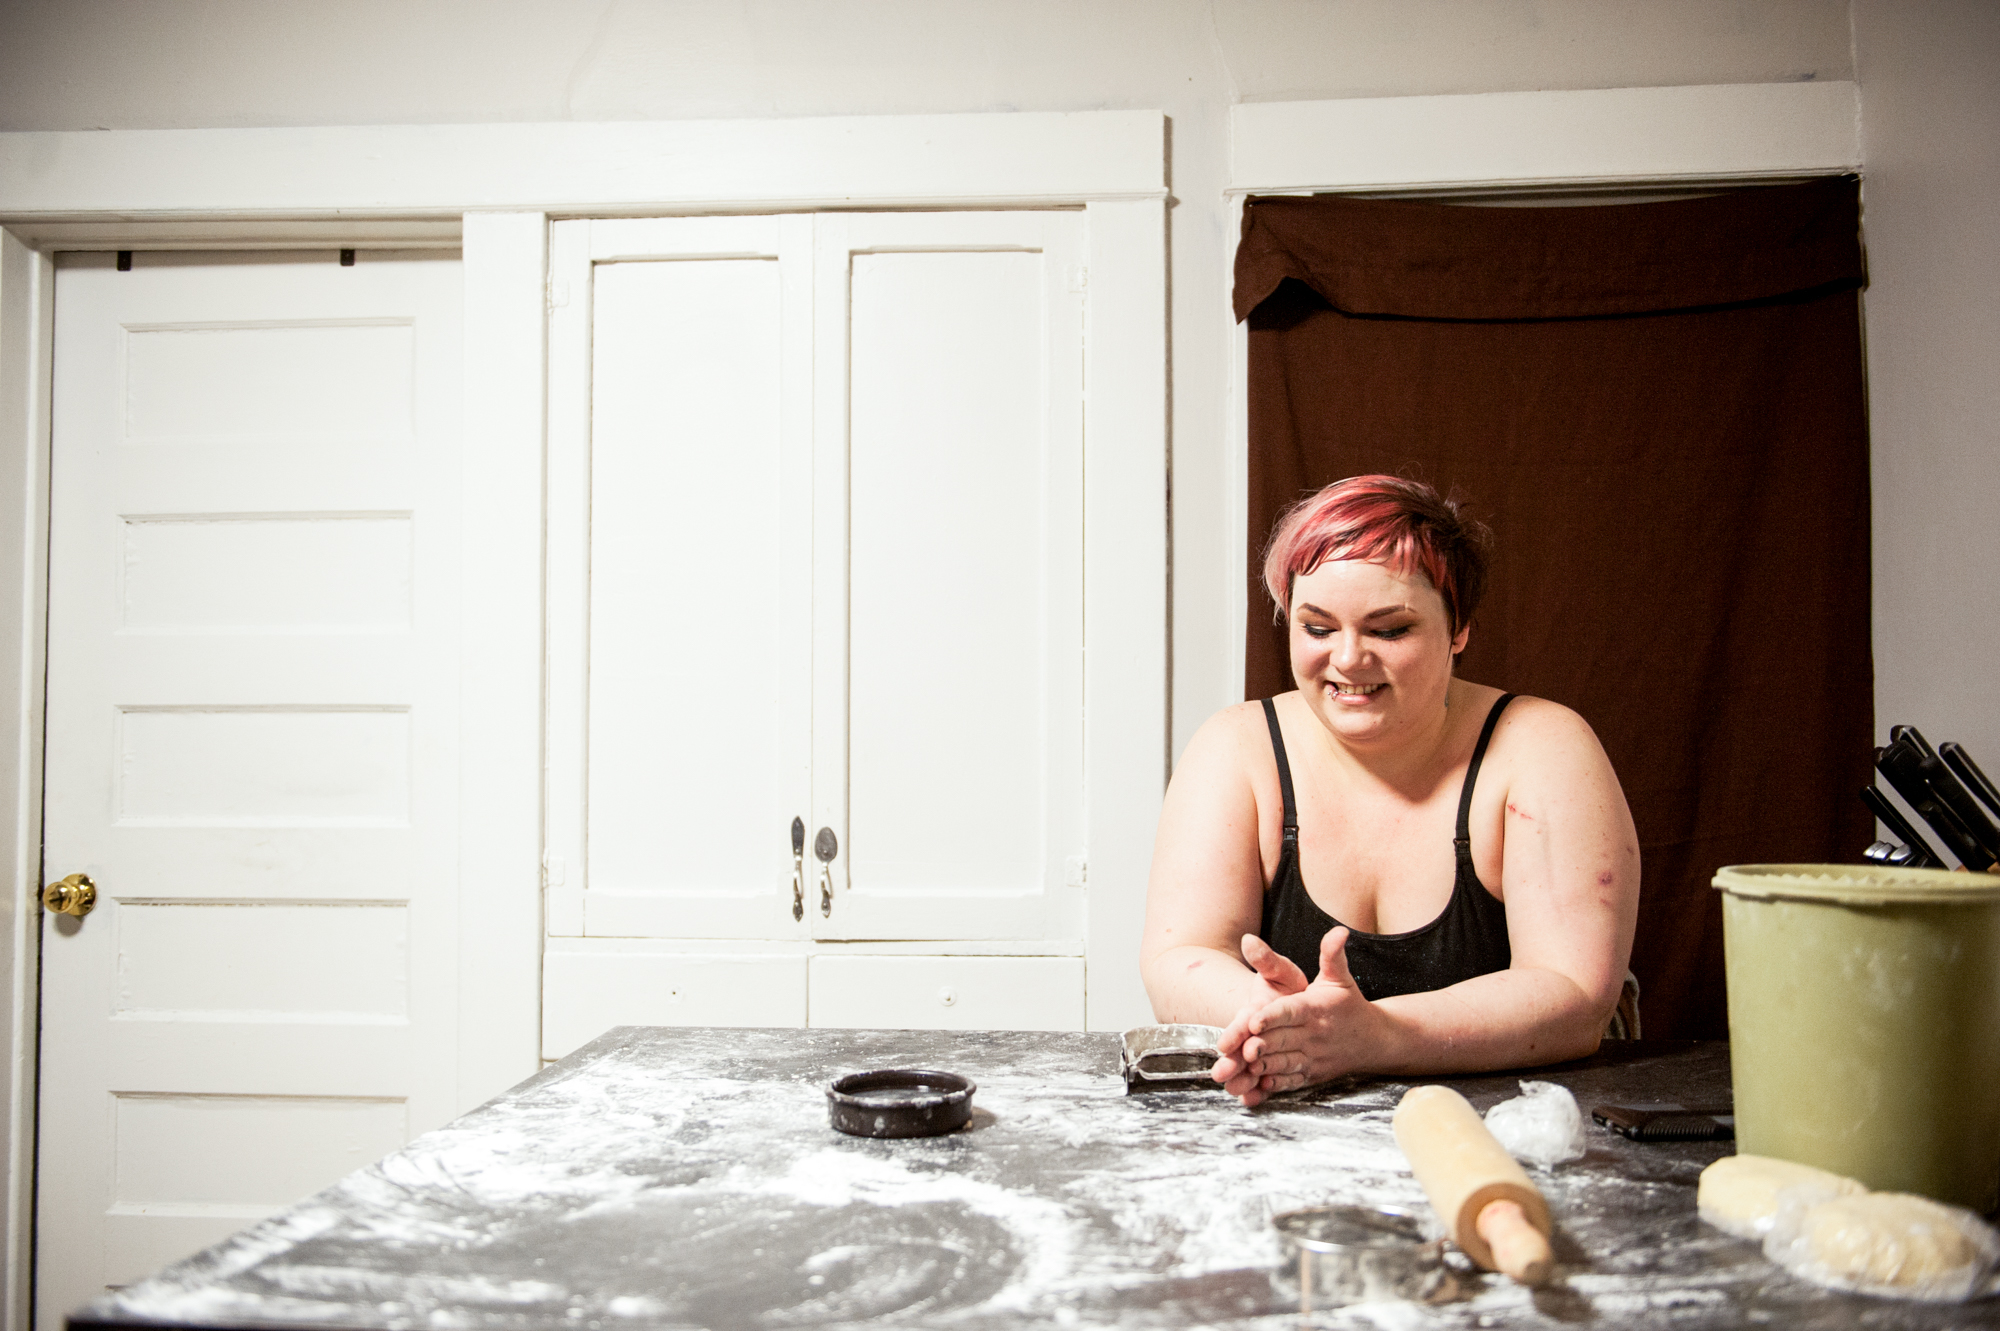 Emily Rose Pormann, who runs Emma's Pierogis on Facebook Marketplace // Photo by Daniel Murphy